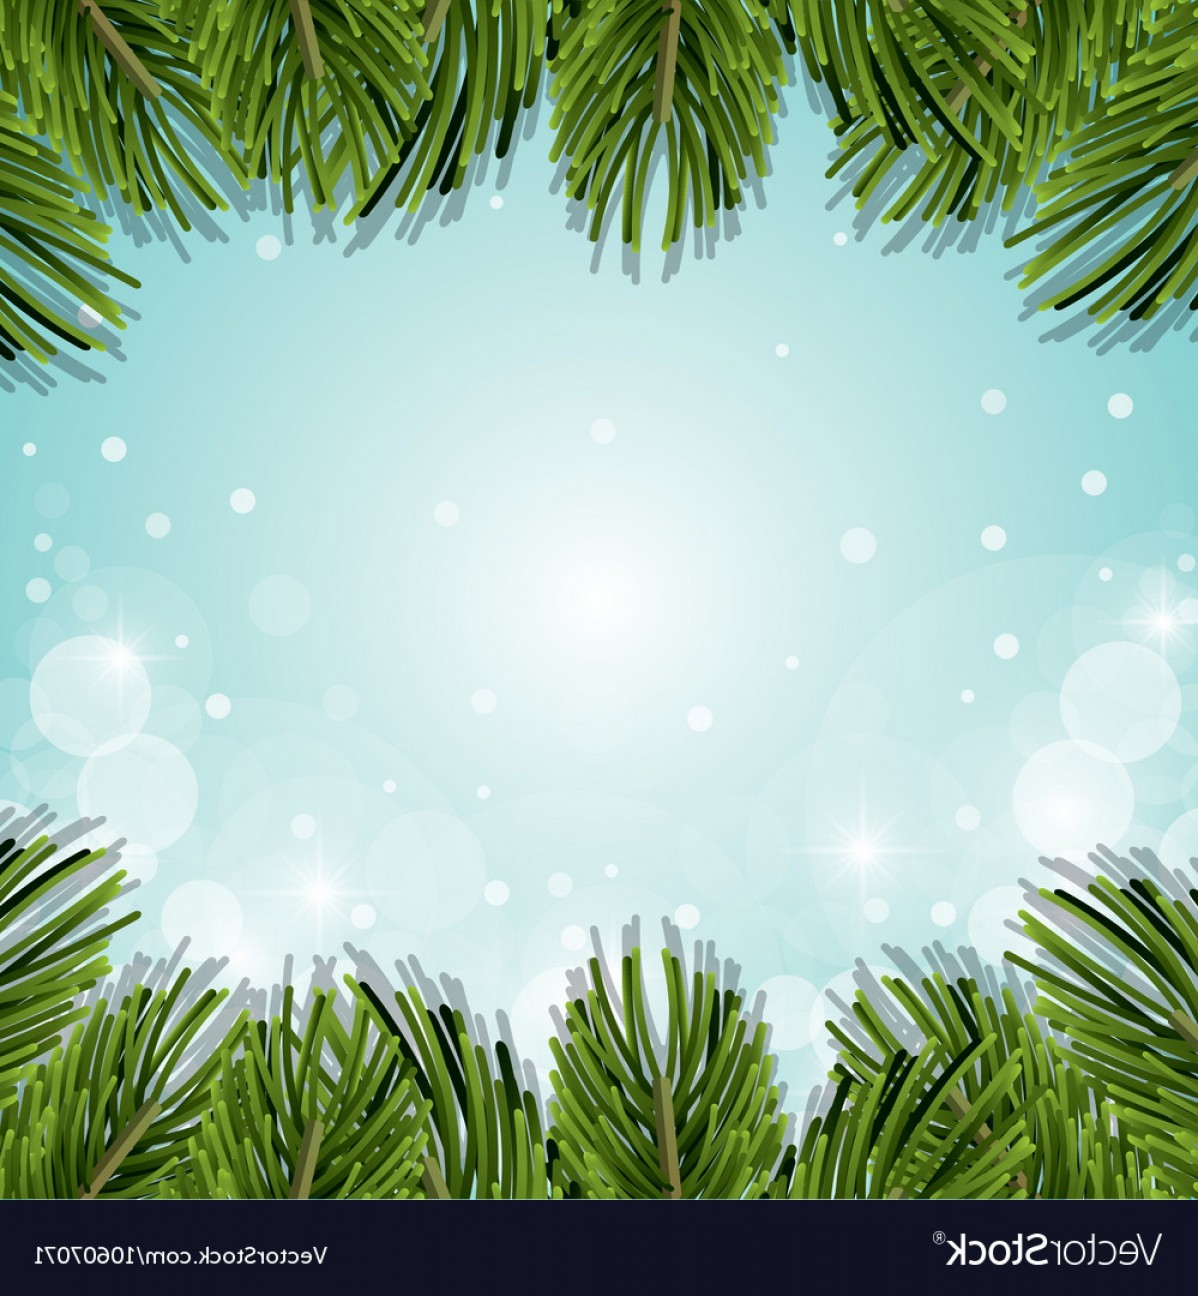 Pine Leaves Vector: Christmas Pine Leaves Decoration Background Vector